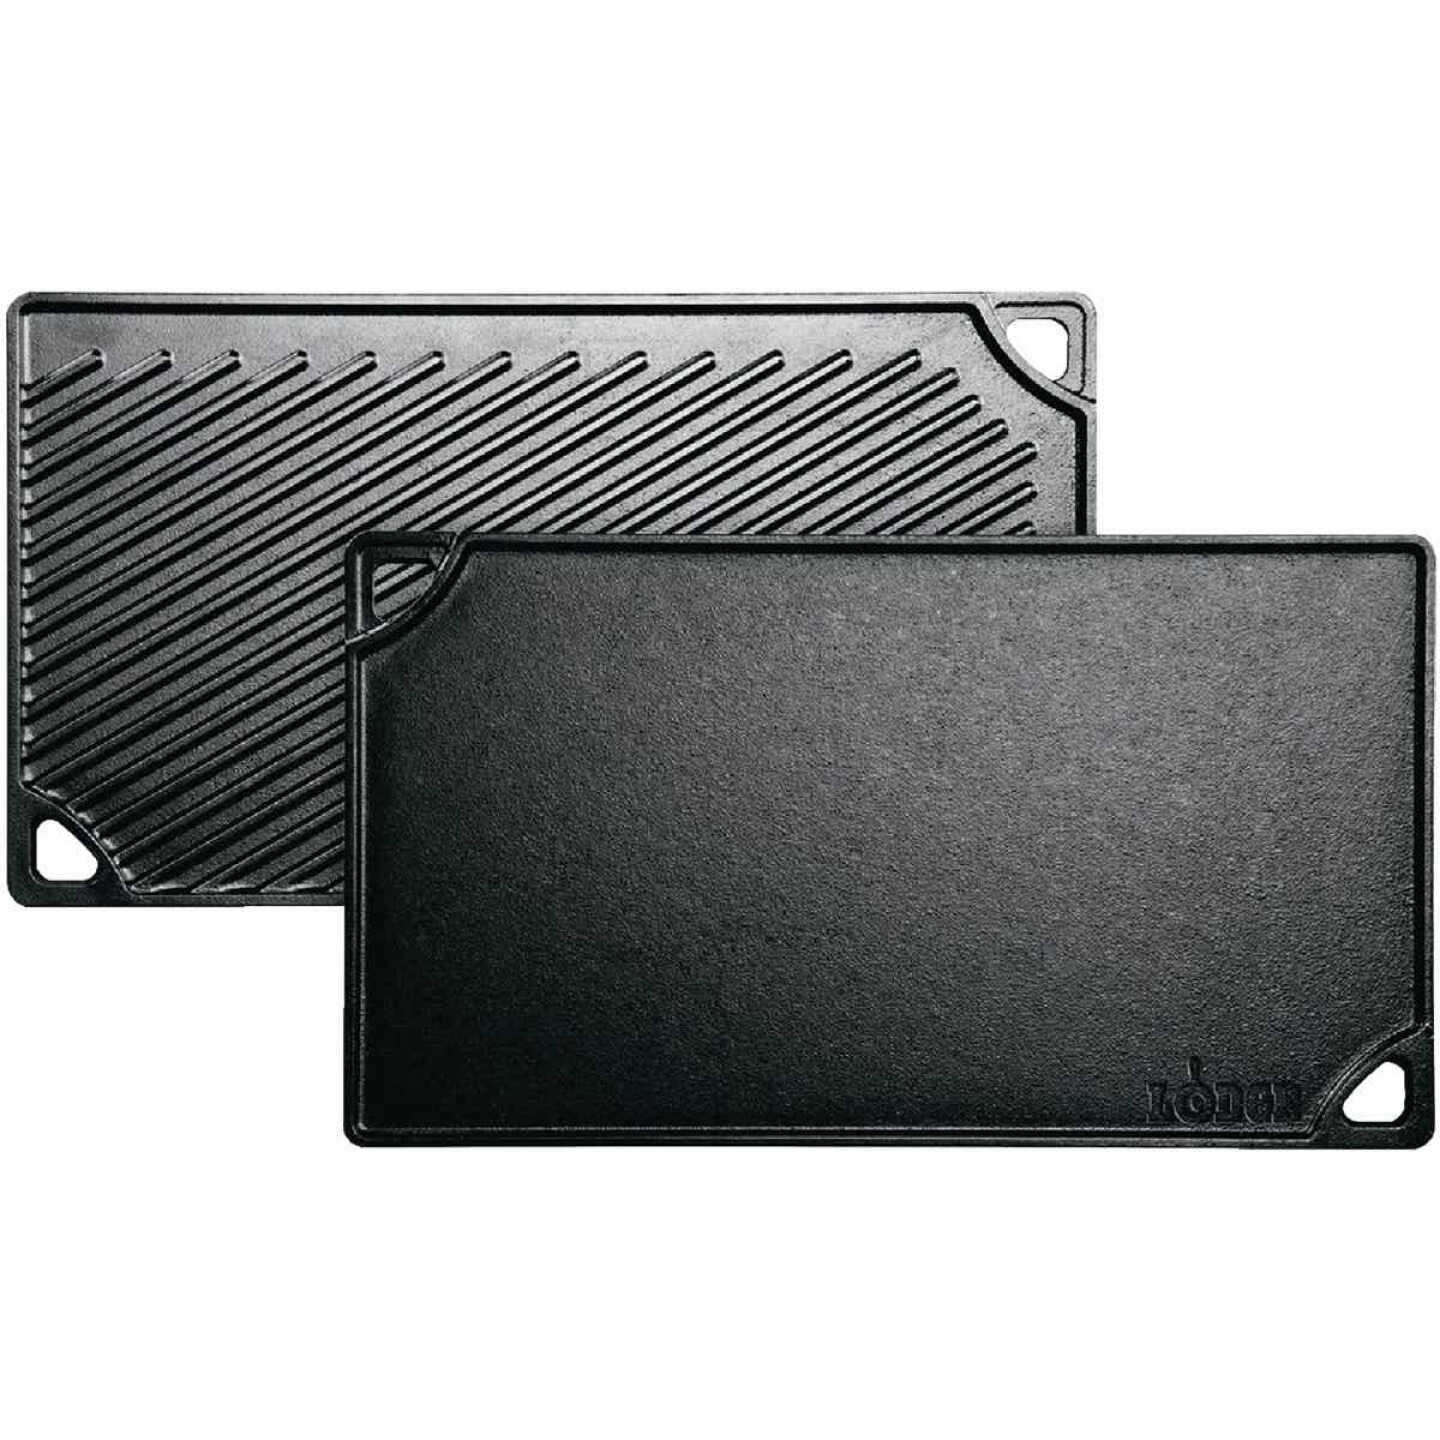 Lodge 9.5 In. x 16.75 In. Cast Iron Griddle Grill Image 1